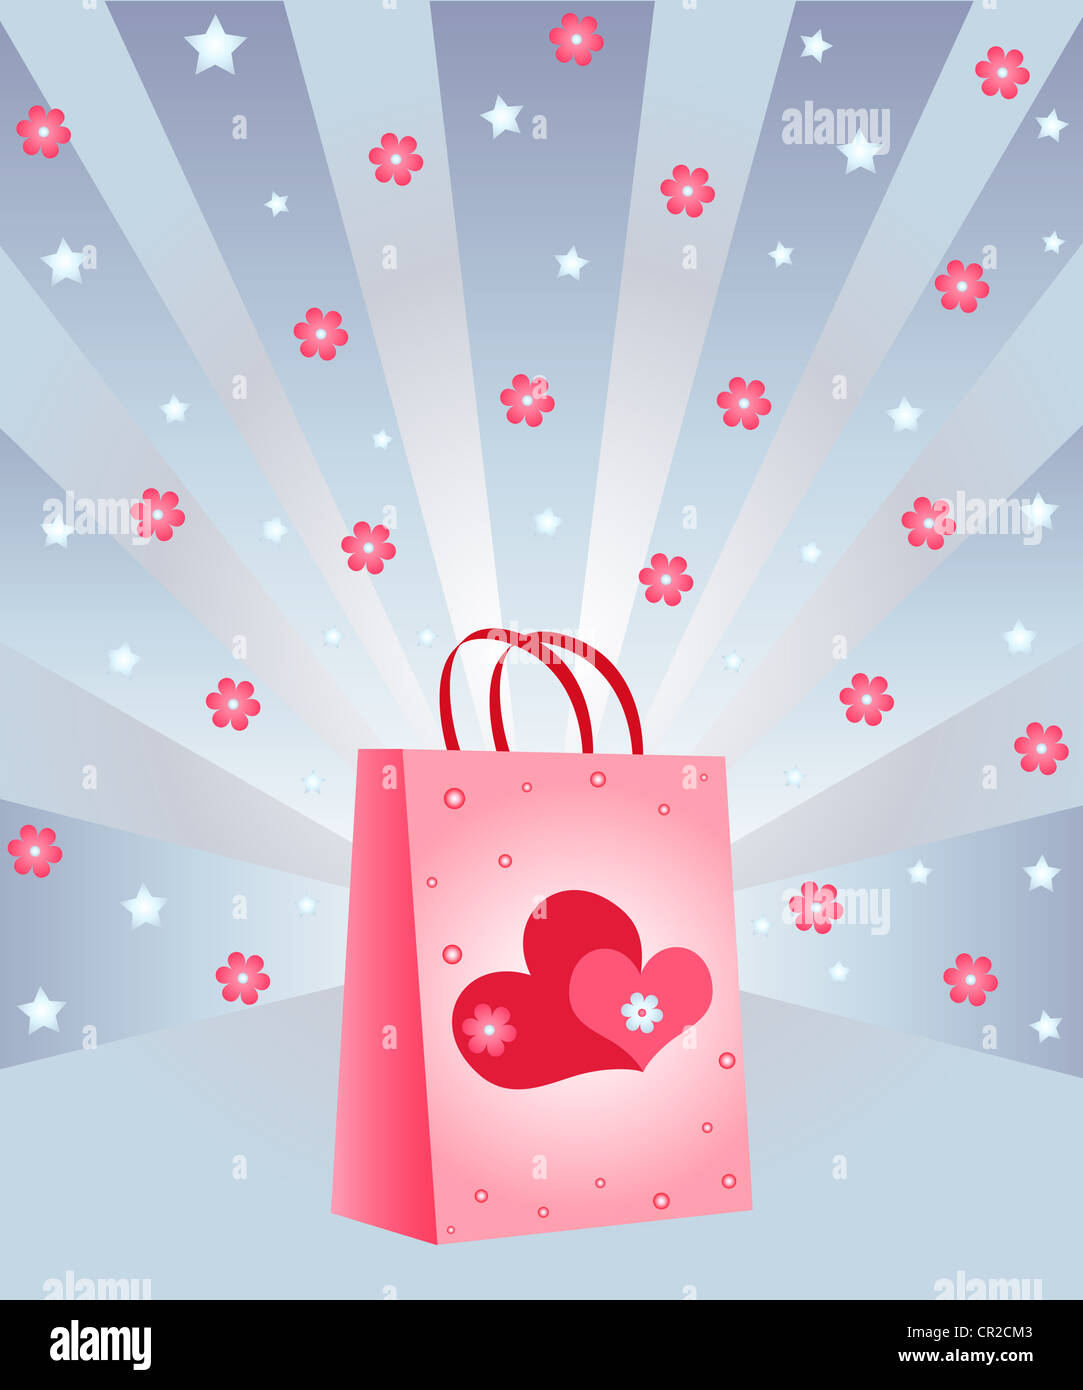 Gift bag with hearts and flowers design Stock Photo